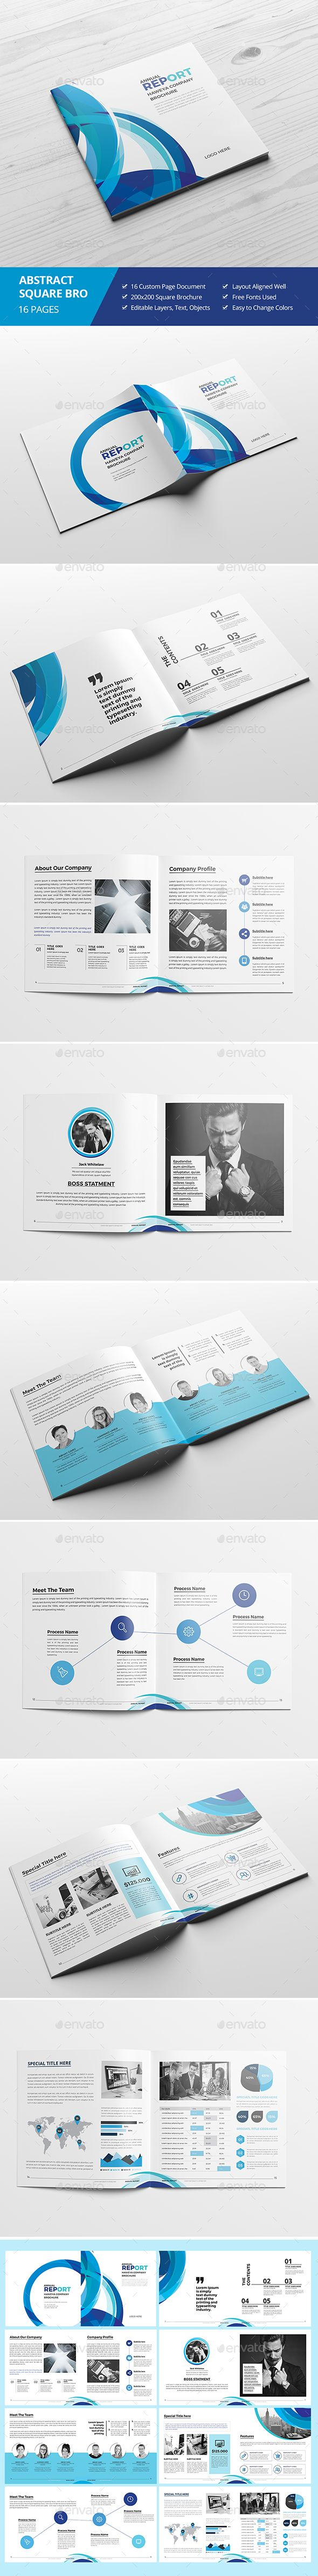 Haweya Abstract Square Brochure Template InDesign INDD. Download here: https://graphicriver.net/item/haweya-abstract-square-brochure-03/17338832?ref=ksioks